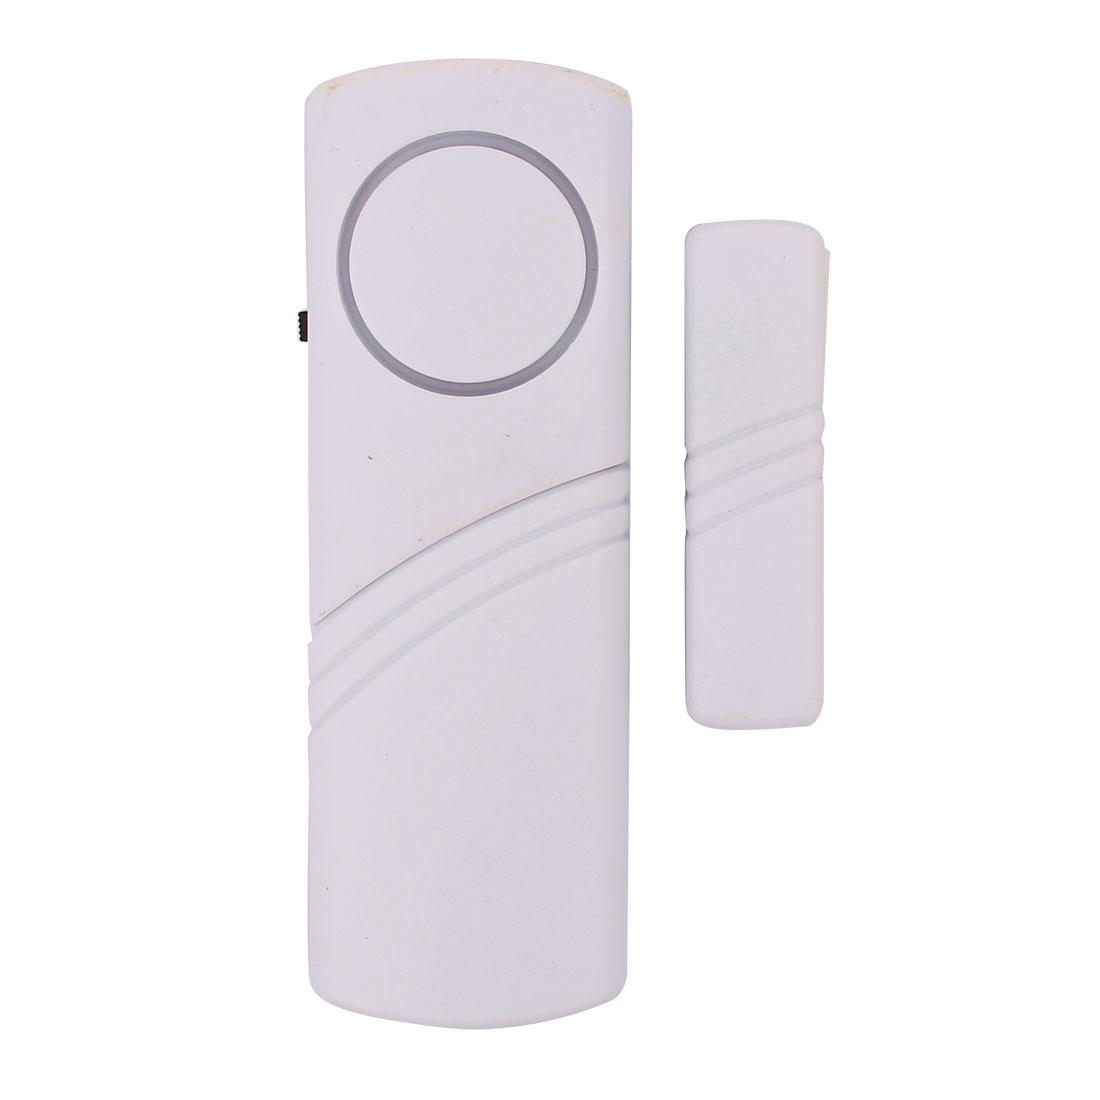 Personal Security Window Door Morei Wireless Alarm System White 90db